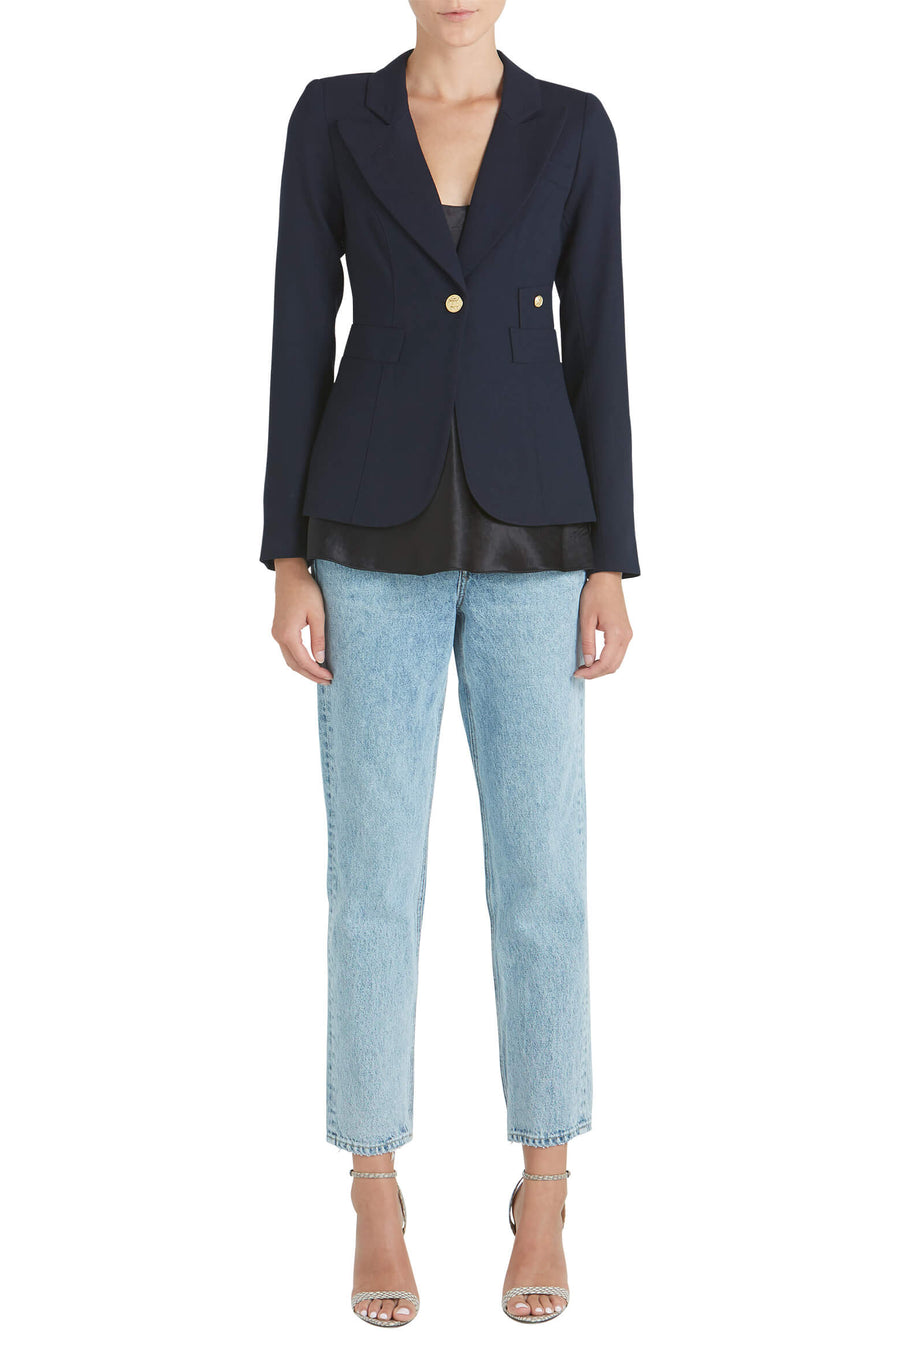 Smythe Classic Duchess Blazer in Navy from The New Trend